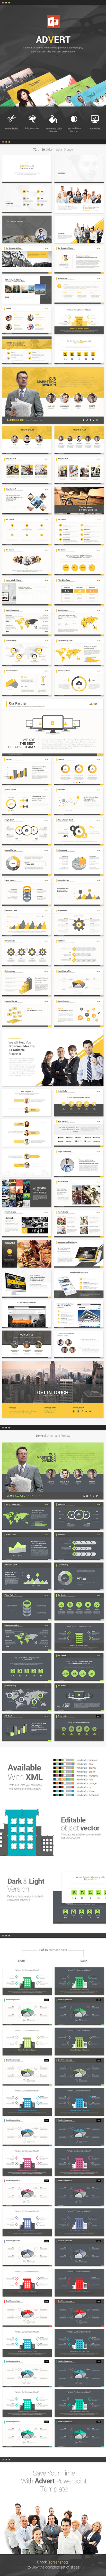 GraphicRiver Advert Powerpoint Template 10581534